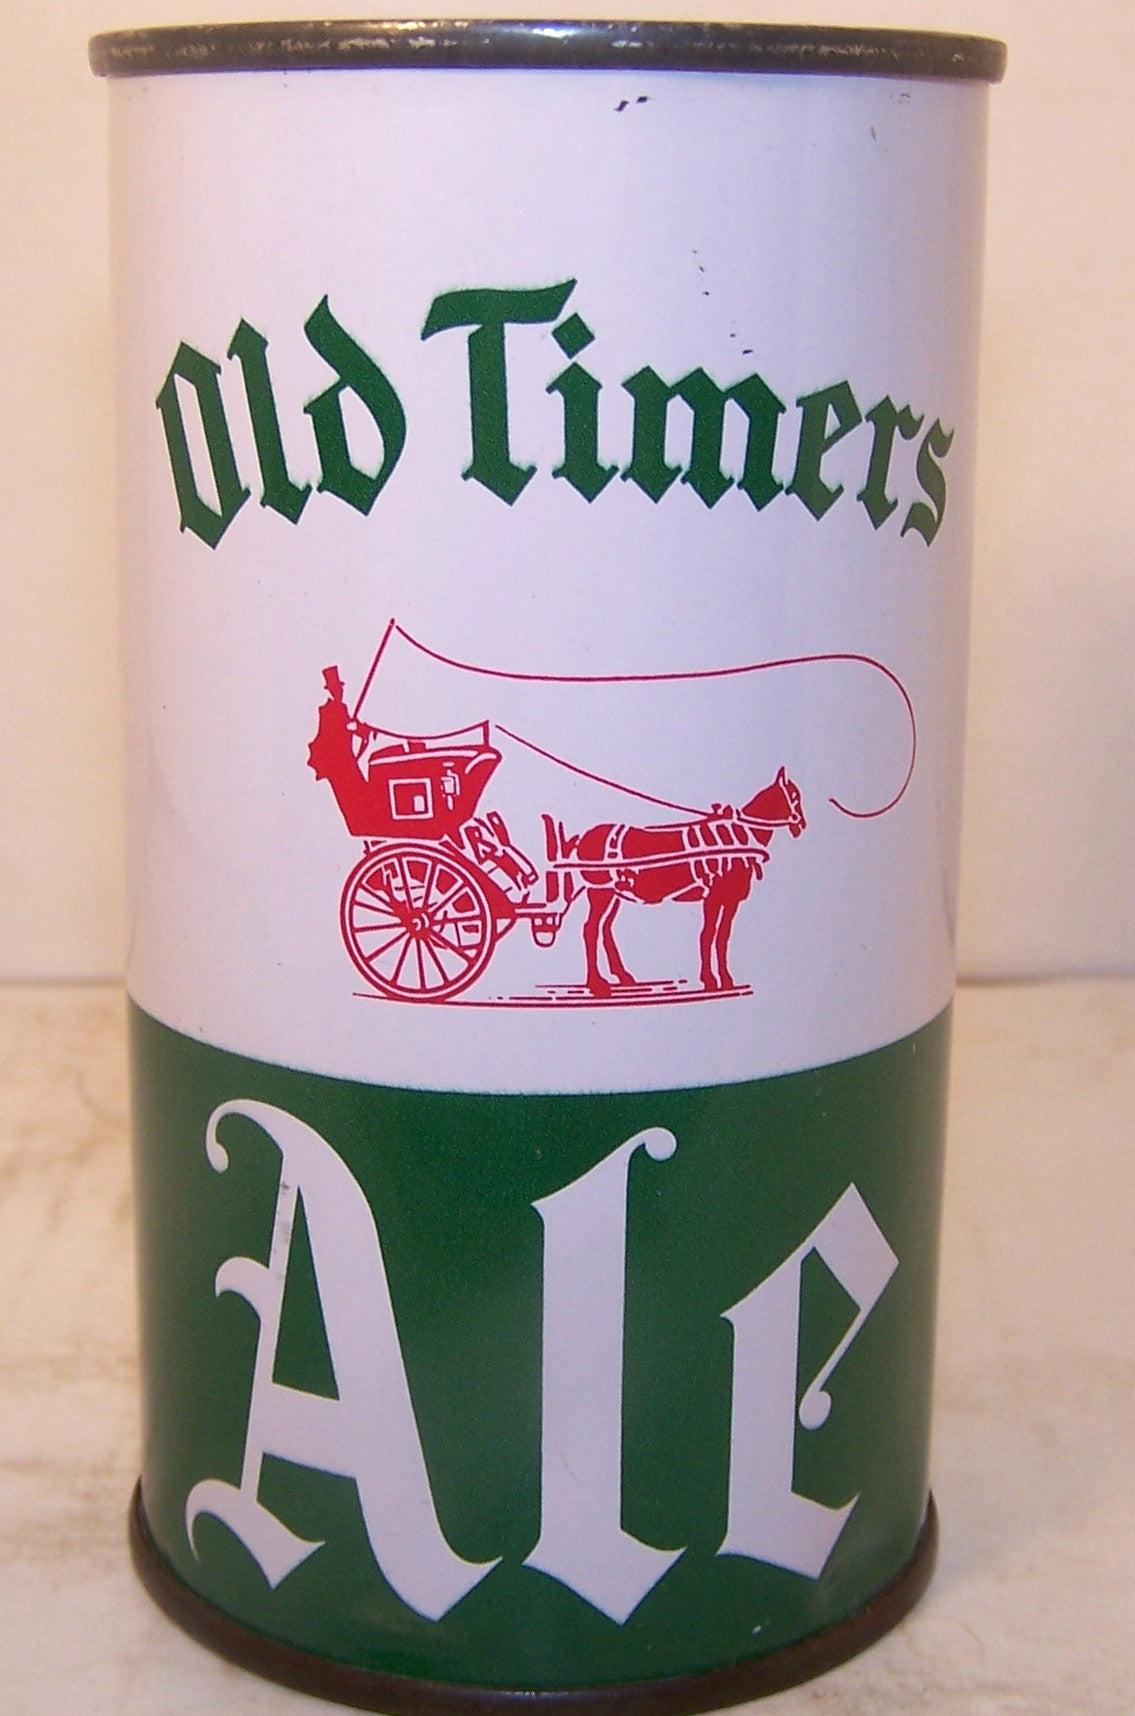 Old Timers Ale, USBC 108-28, Grade 1/1+  Sold 12/9/14